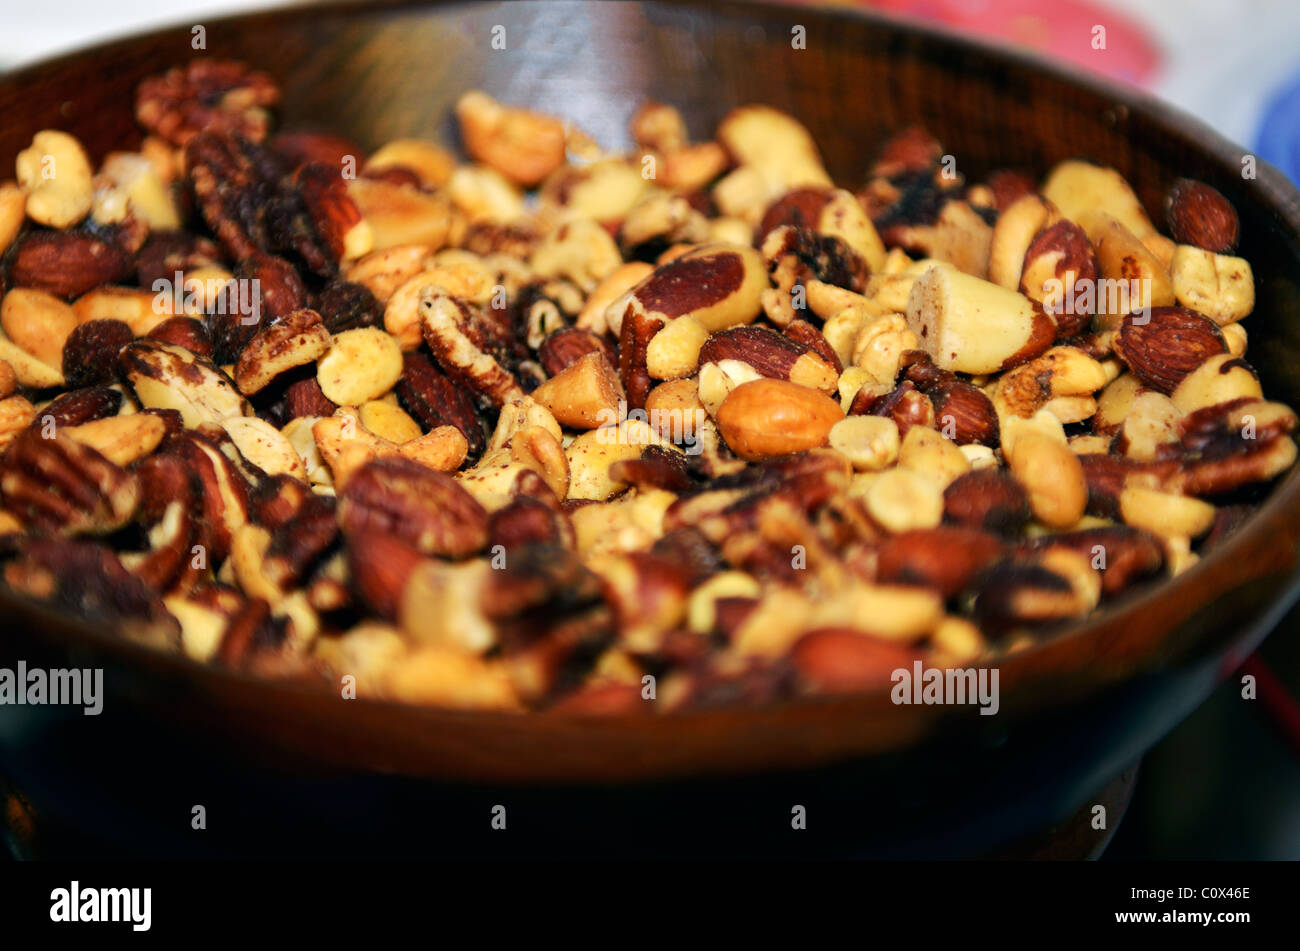 A wooden bowl filled with roasted, salted mixed nuts. Closeup. - Stock Image